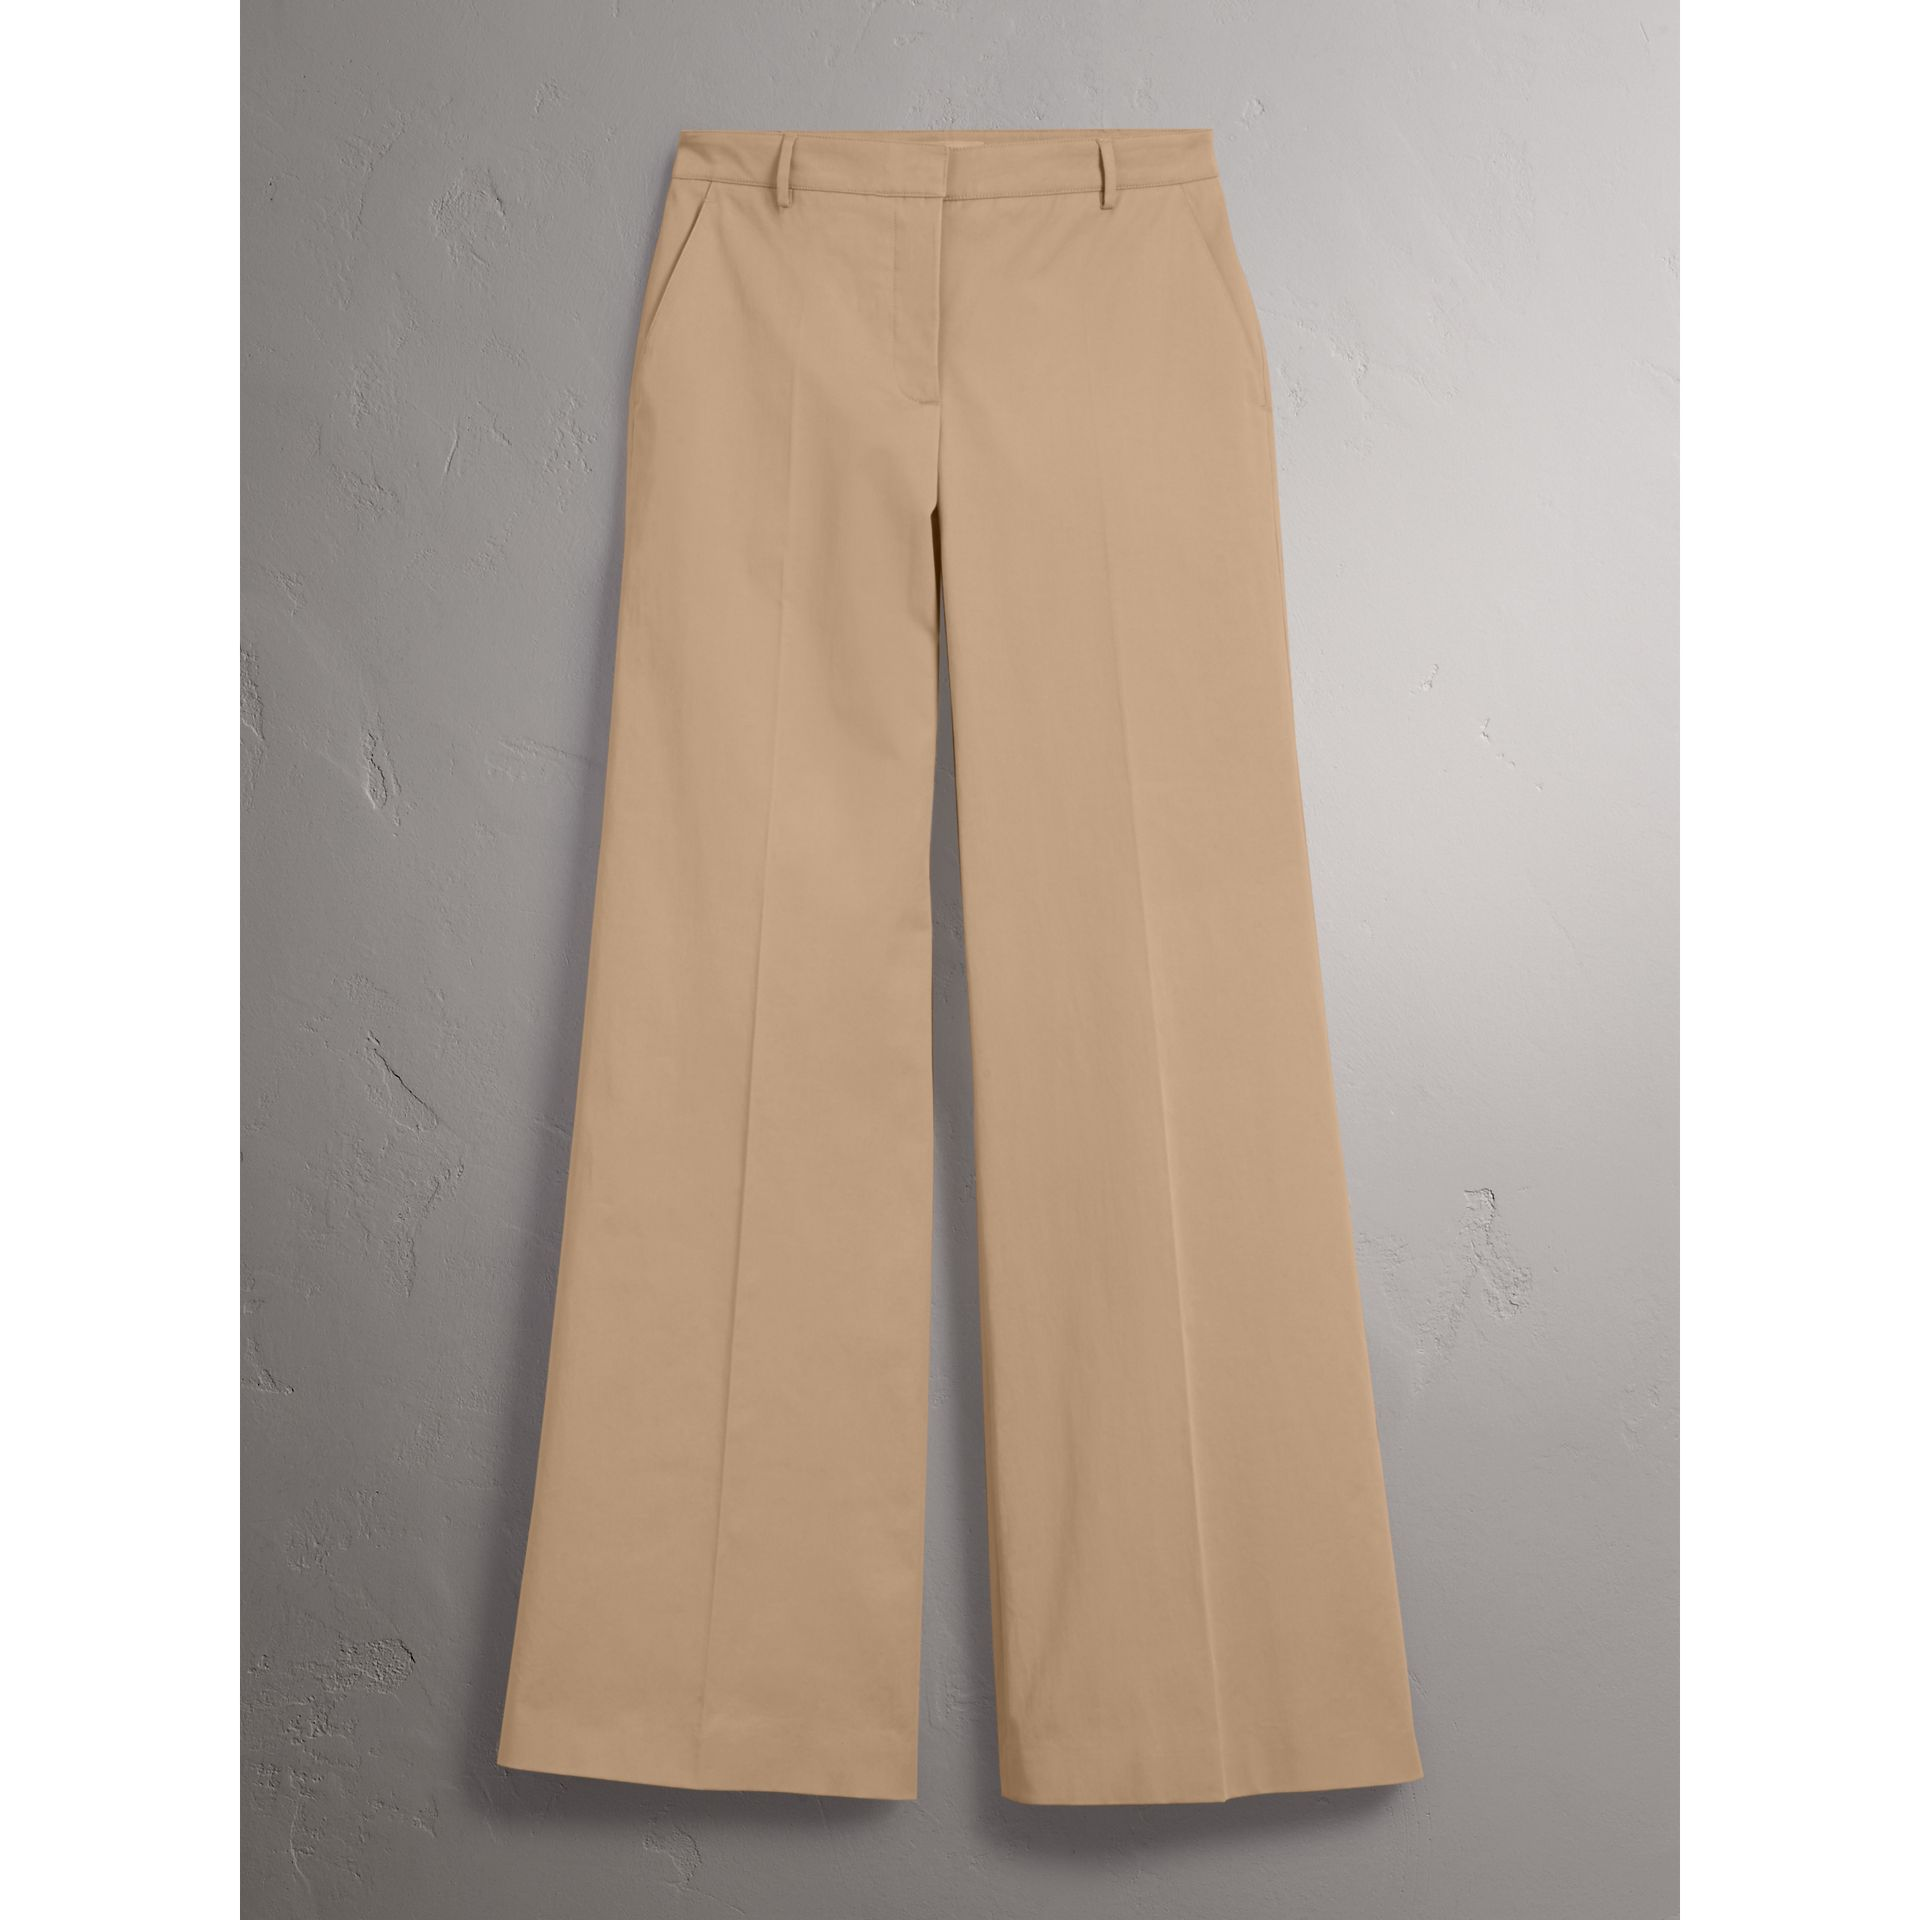 Cotton Twill Wide-leg Trousers in Camel - Women | Burberry - gallery image 3